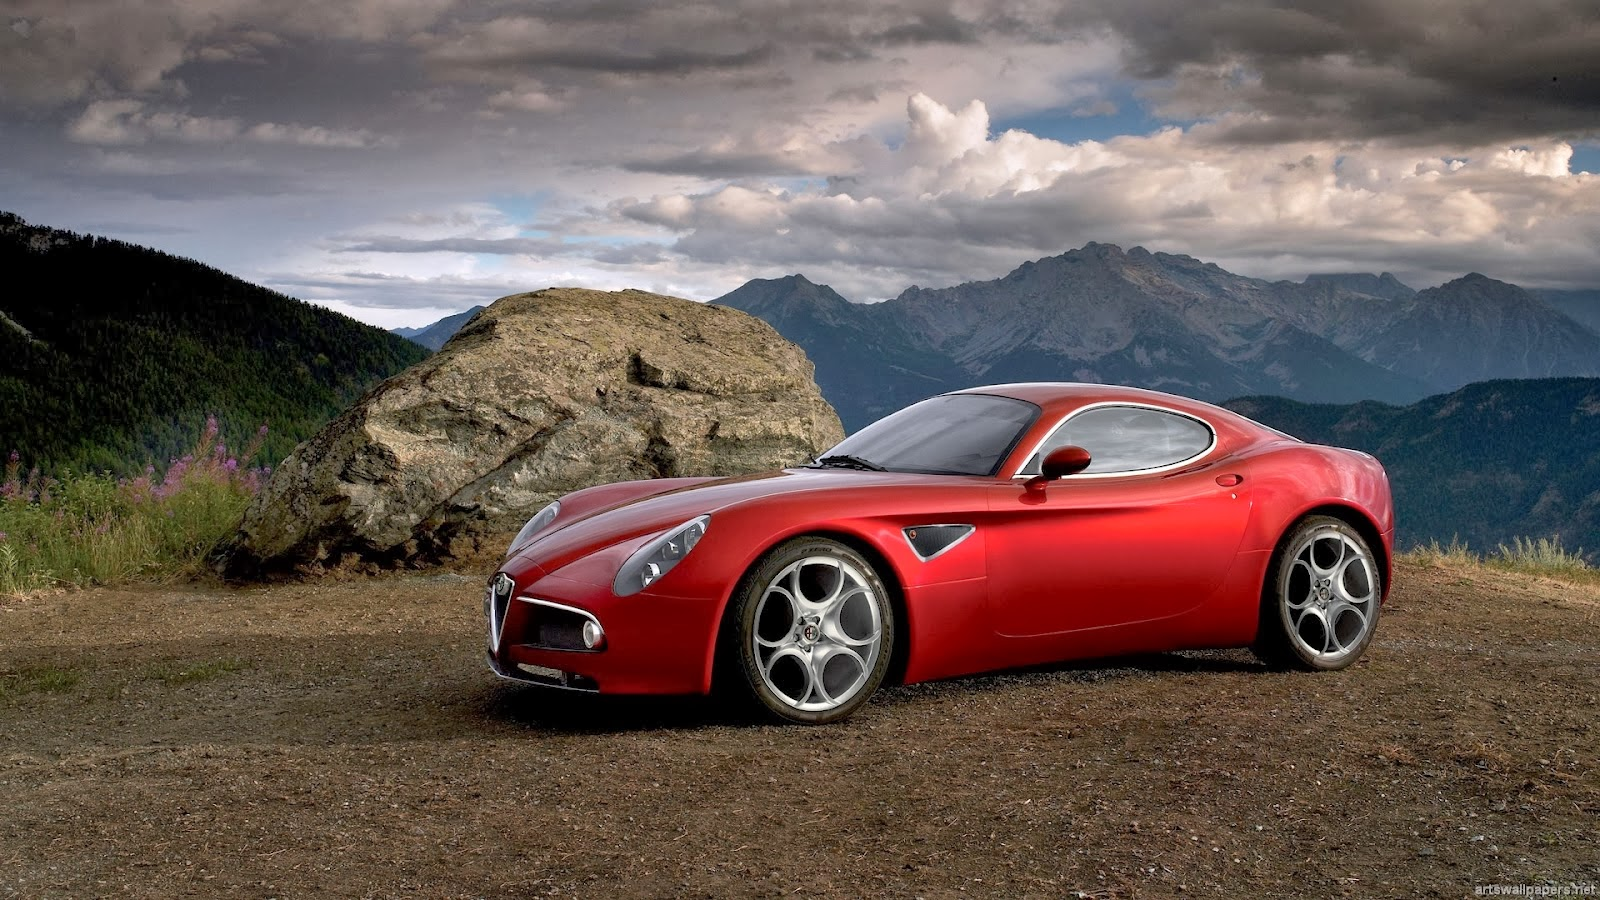 top wallpapers images world beautiful car wallpapers